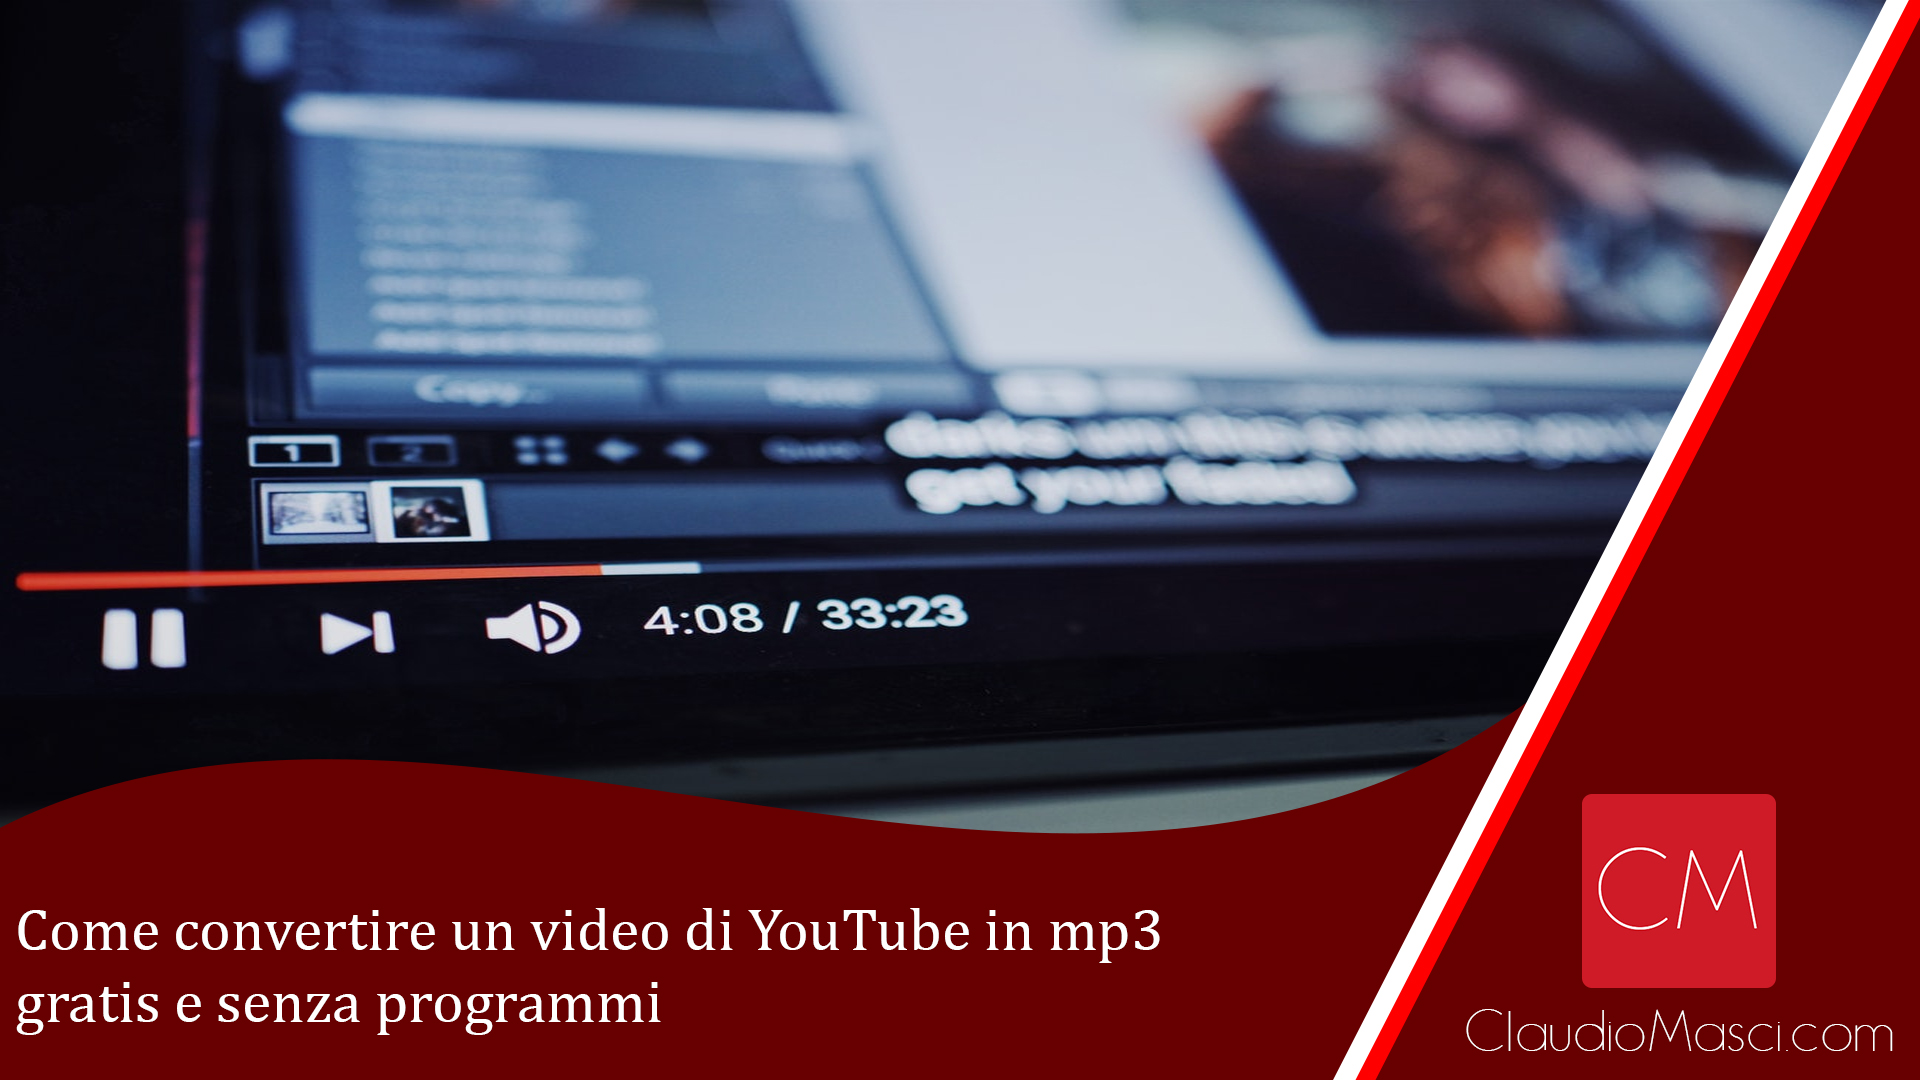 Come convertire un video di YouTube in mp3 gratis e senza programmi